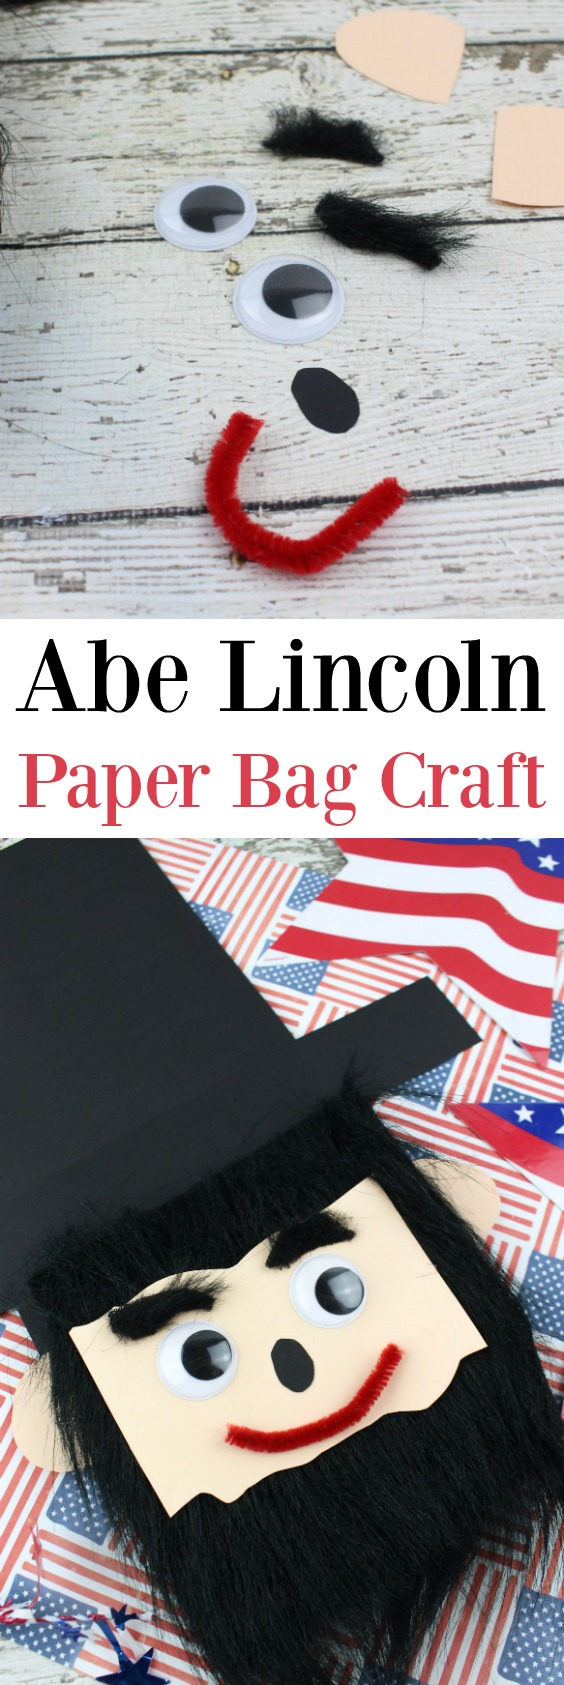 Abe Lincoln Paper Bag Craft - Super easy paper bag Abraham Lincoln craft for kids perfect for President's Day with steps by steps direction to make life easier.